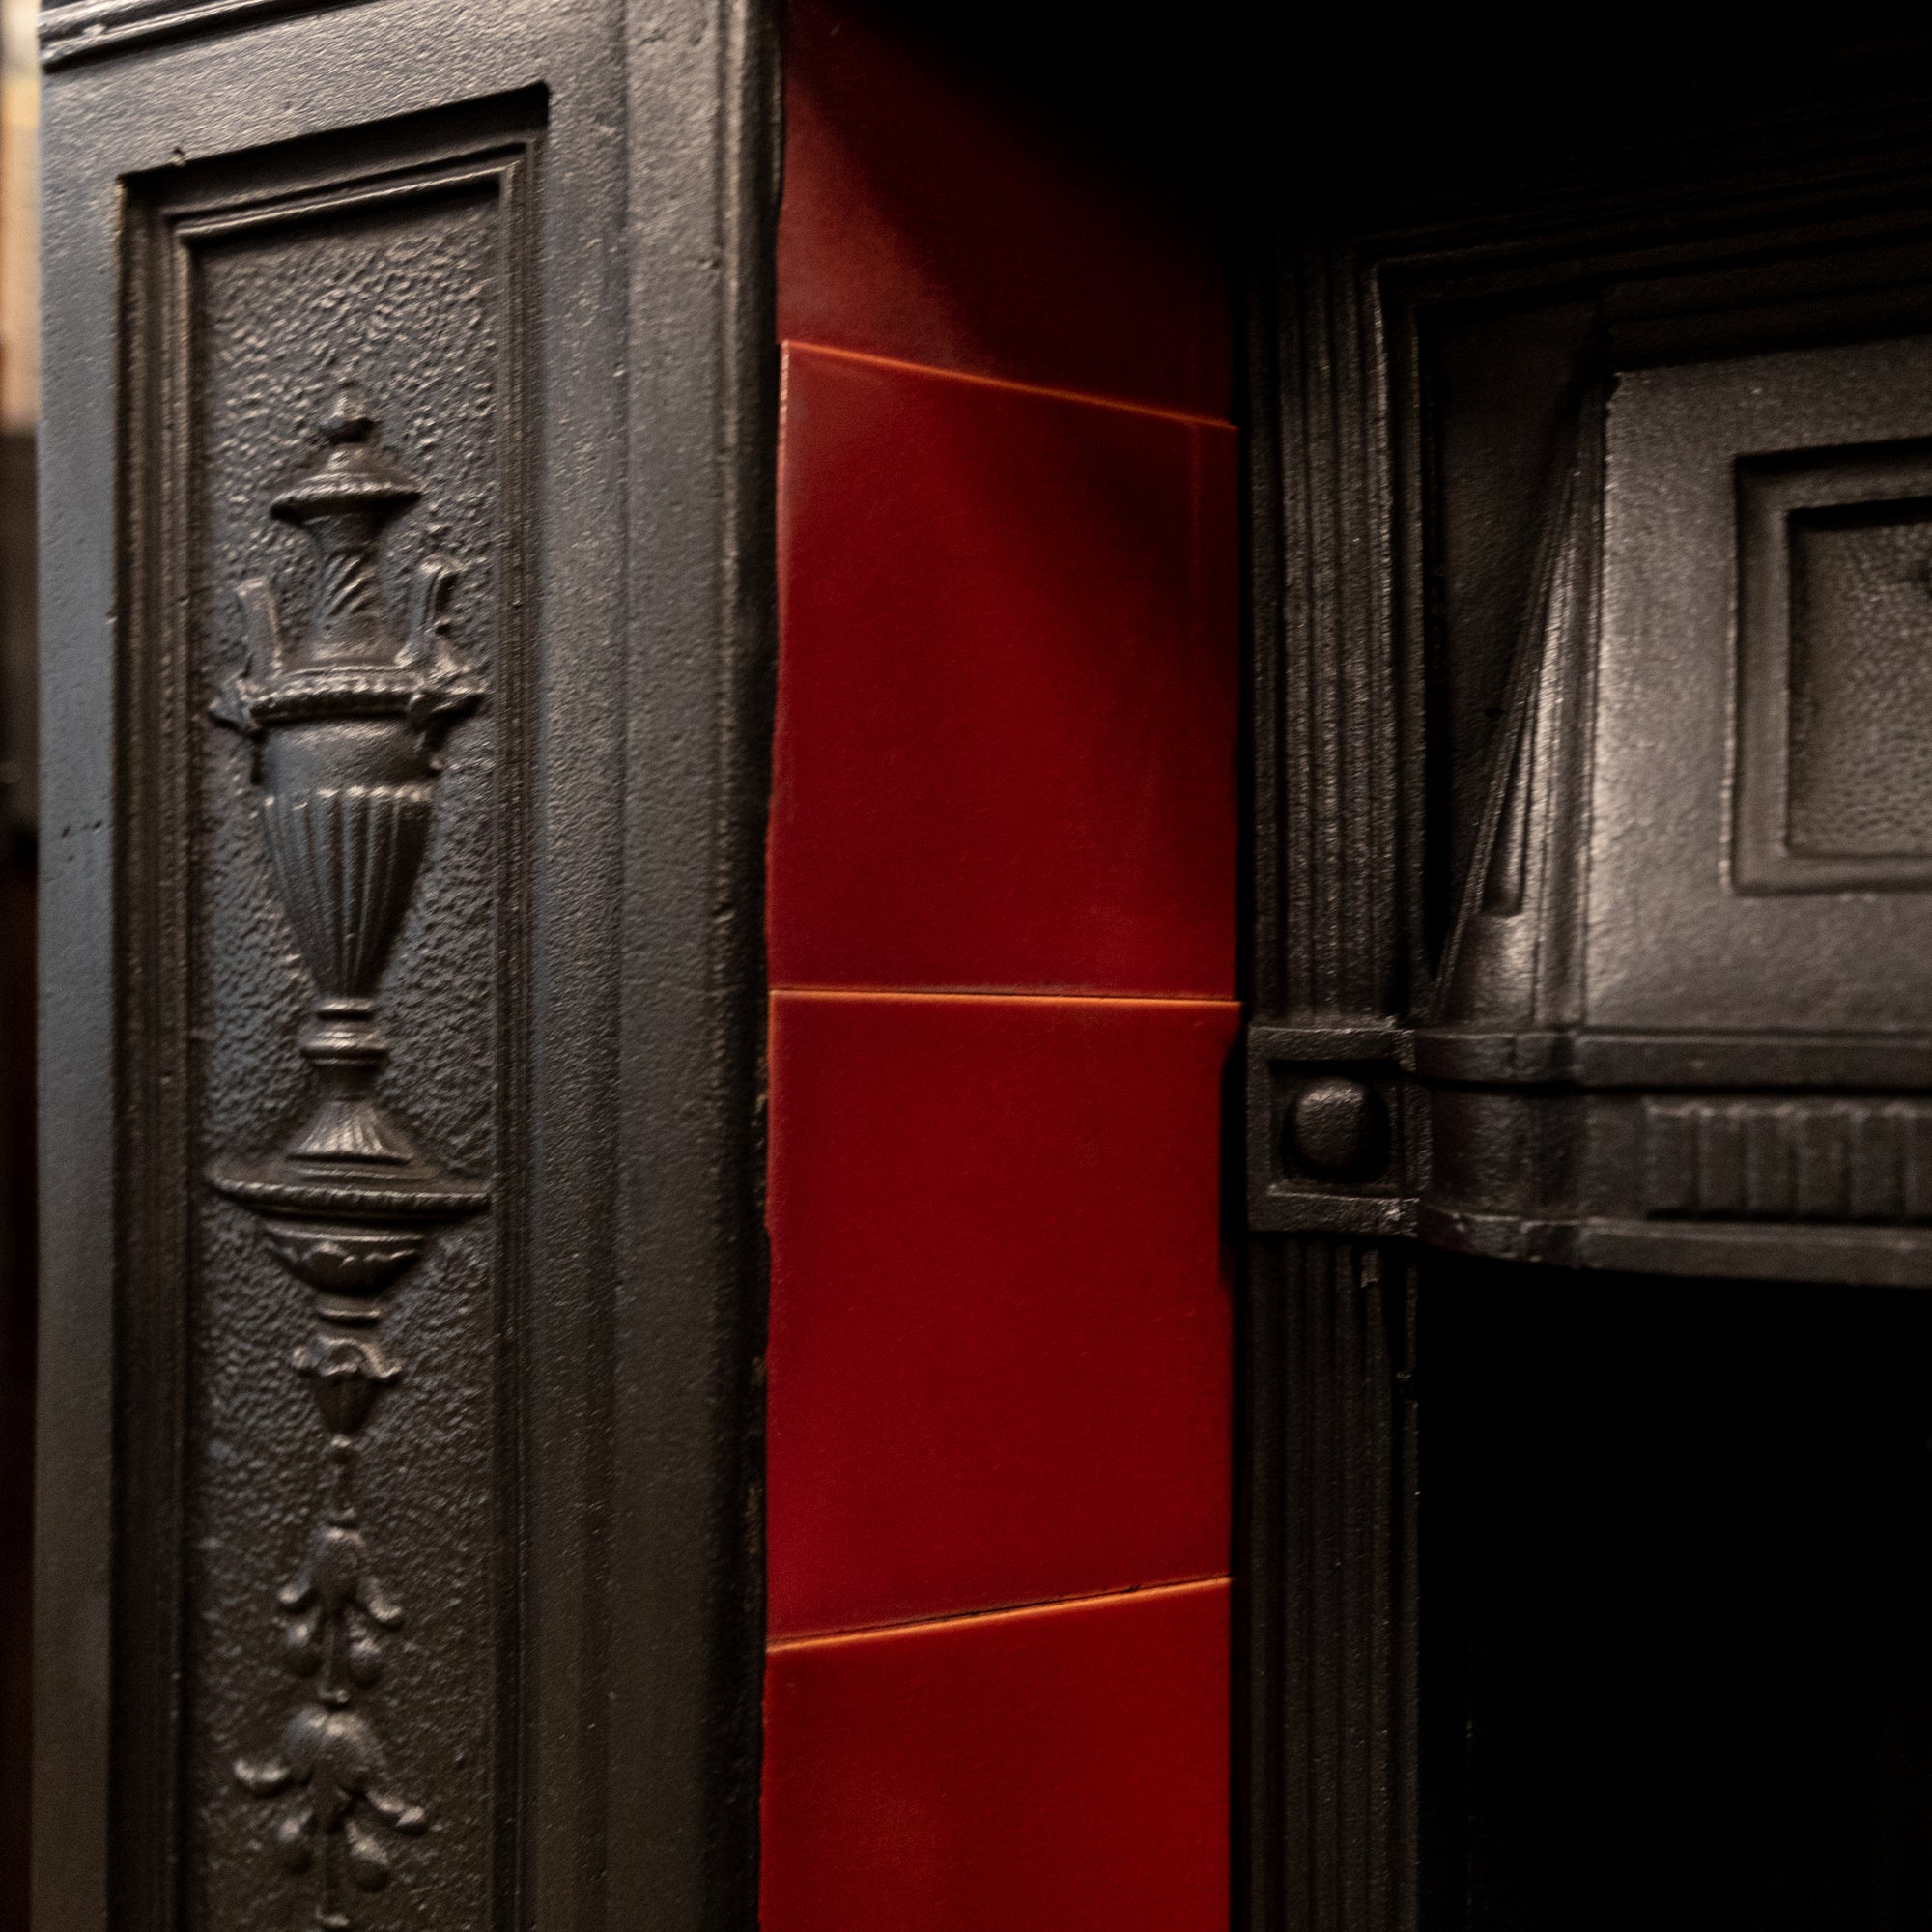 Antique Edwardian Cast Iron Combination Fireplace with Red Tiles | The Architectural Forum